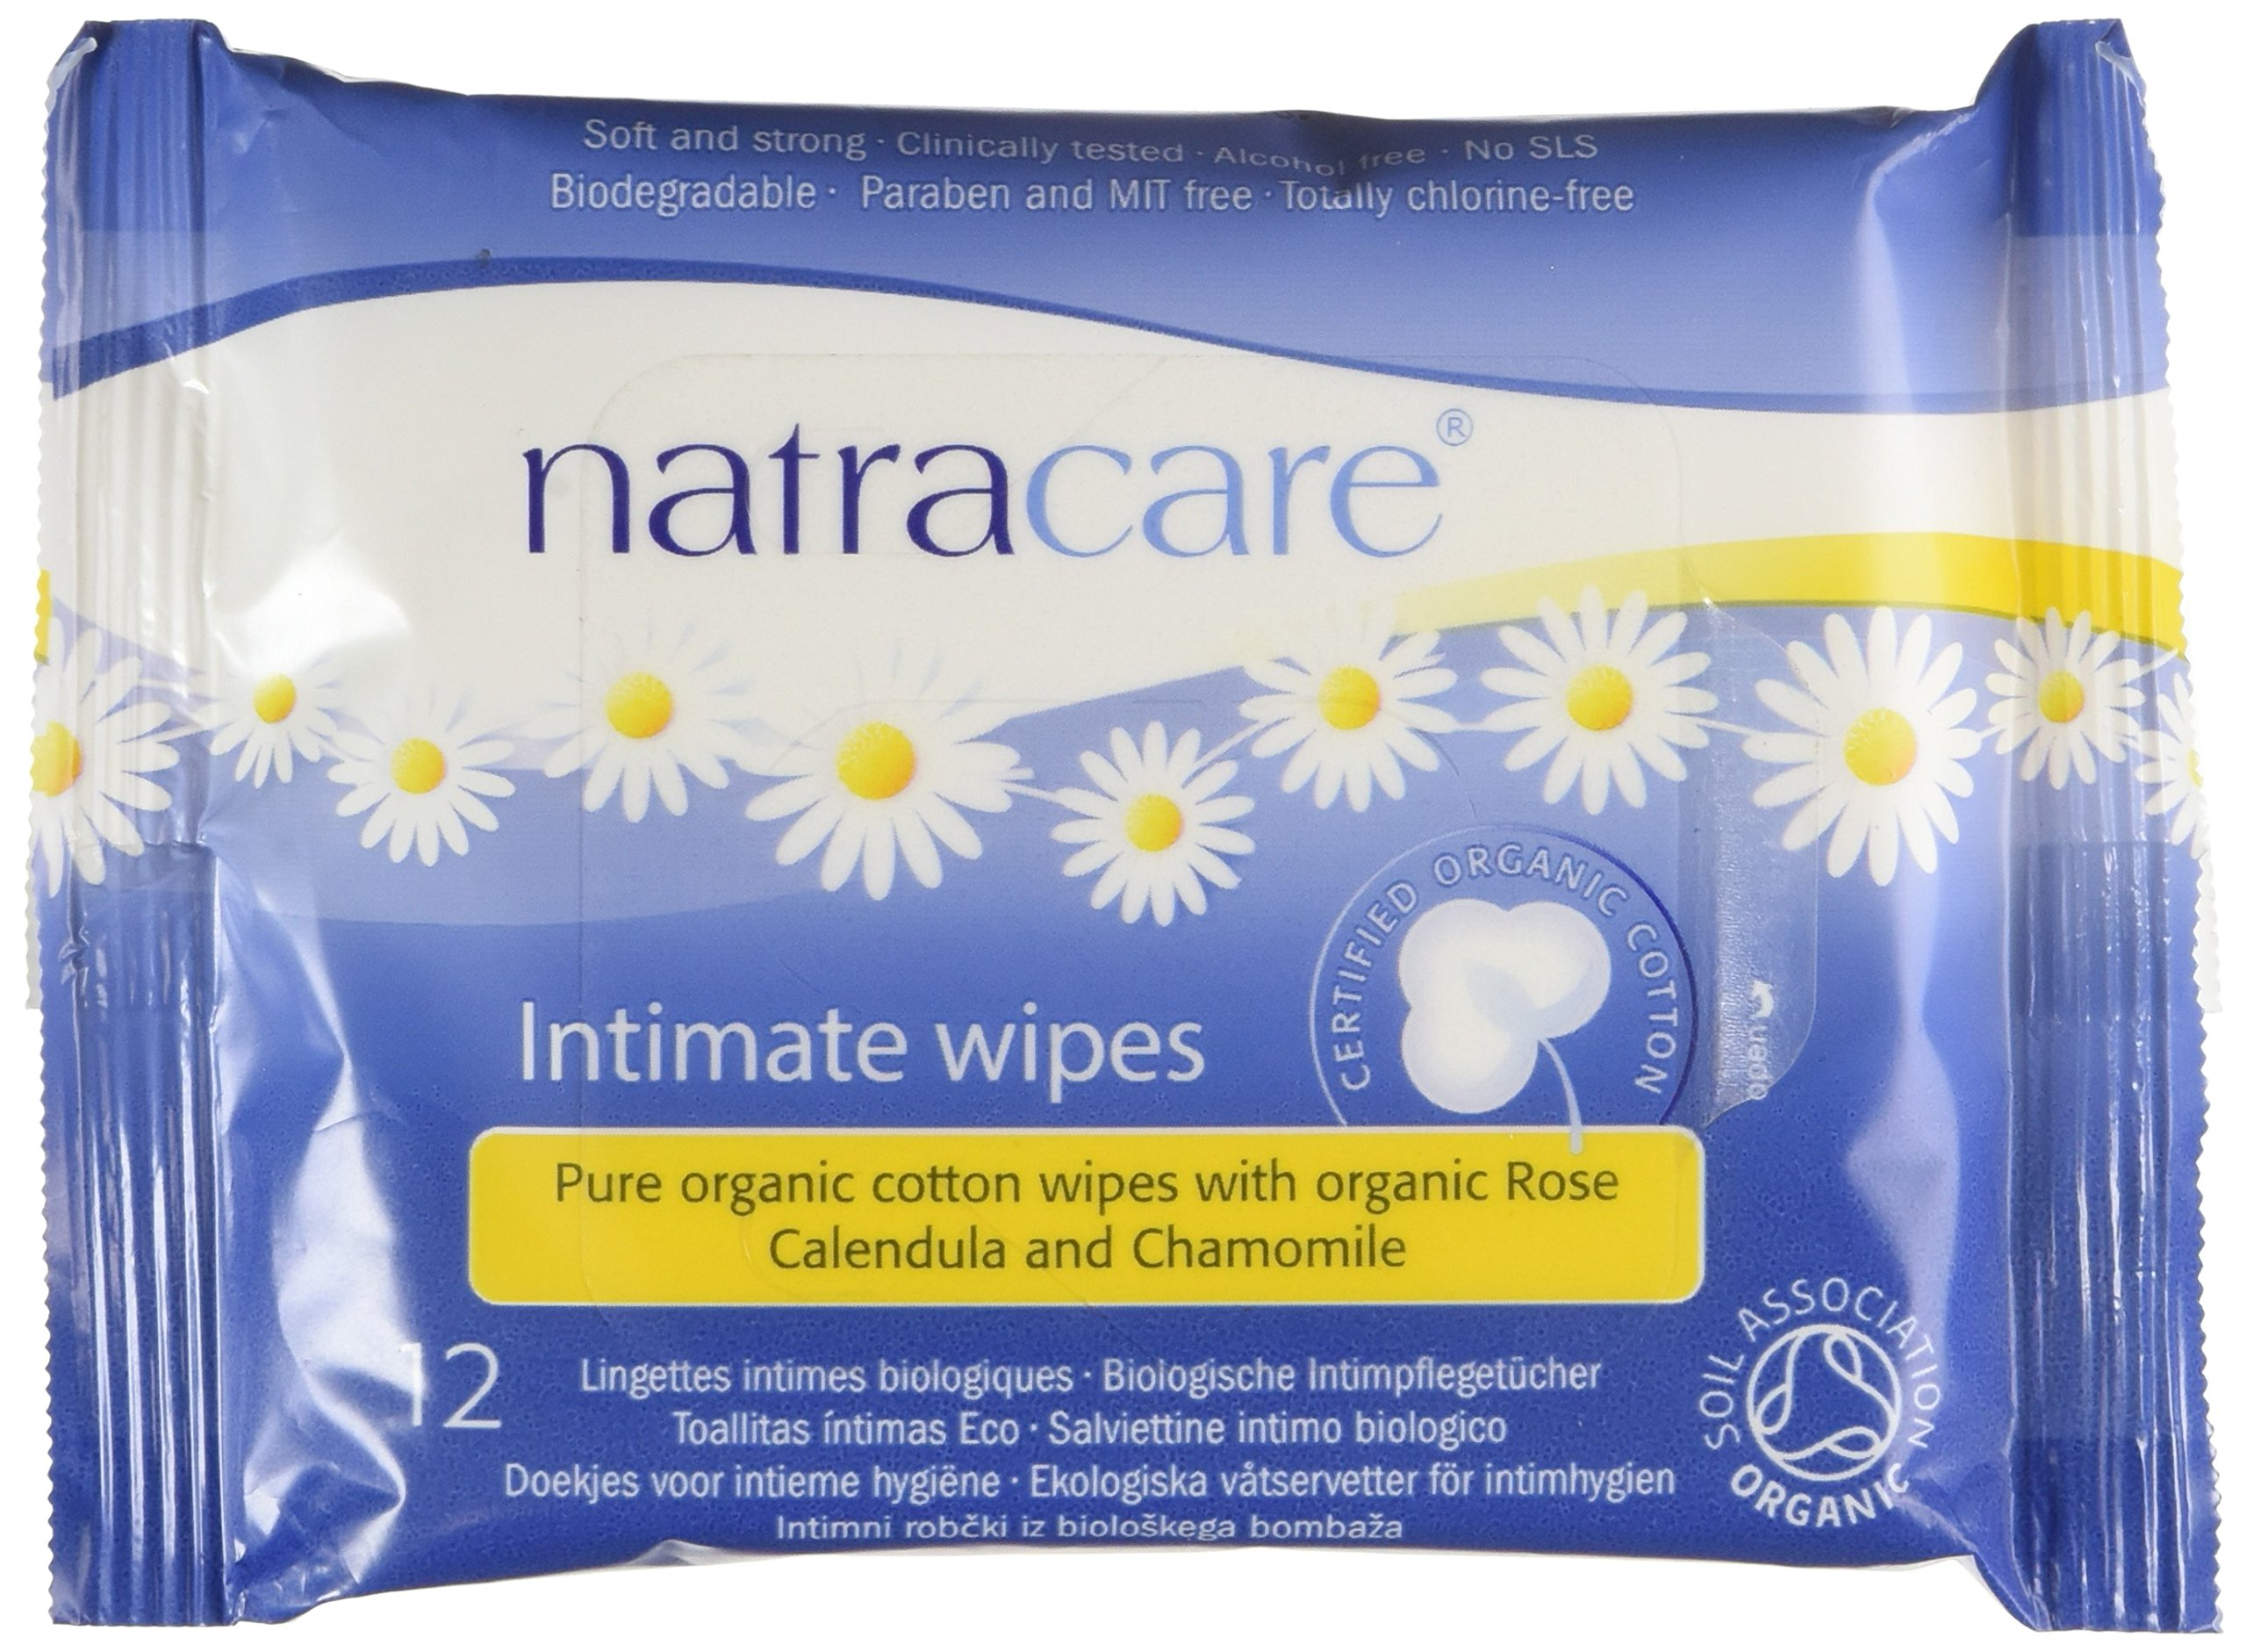 Natracare Organic Cotton Intimate Wipes, 12 Count (Pack of 24) product image